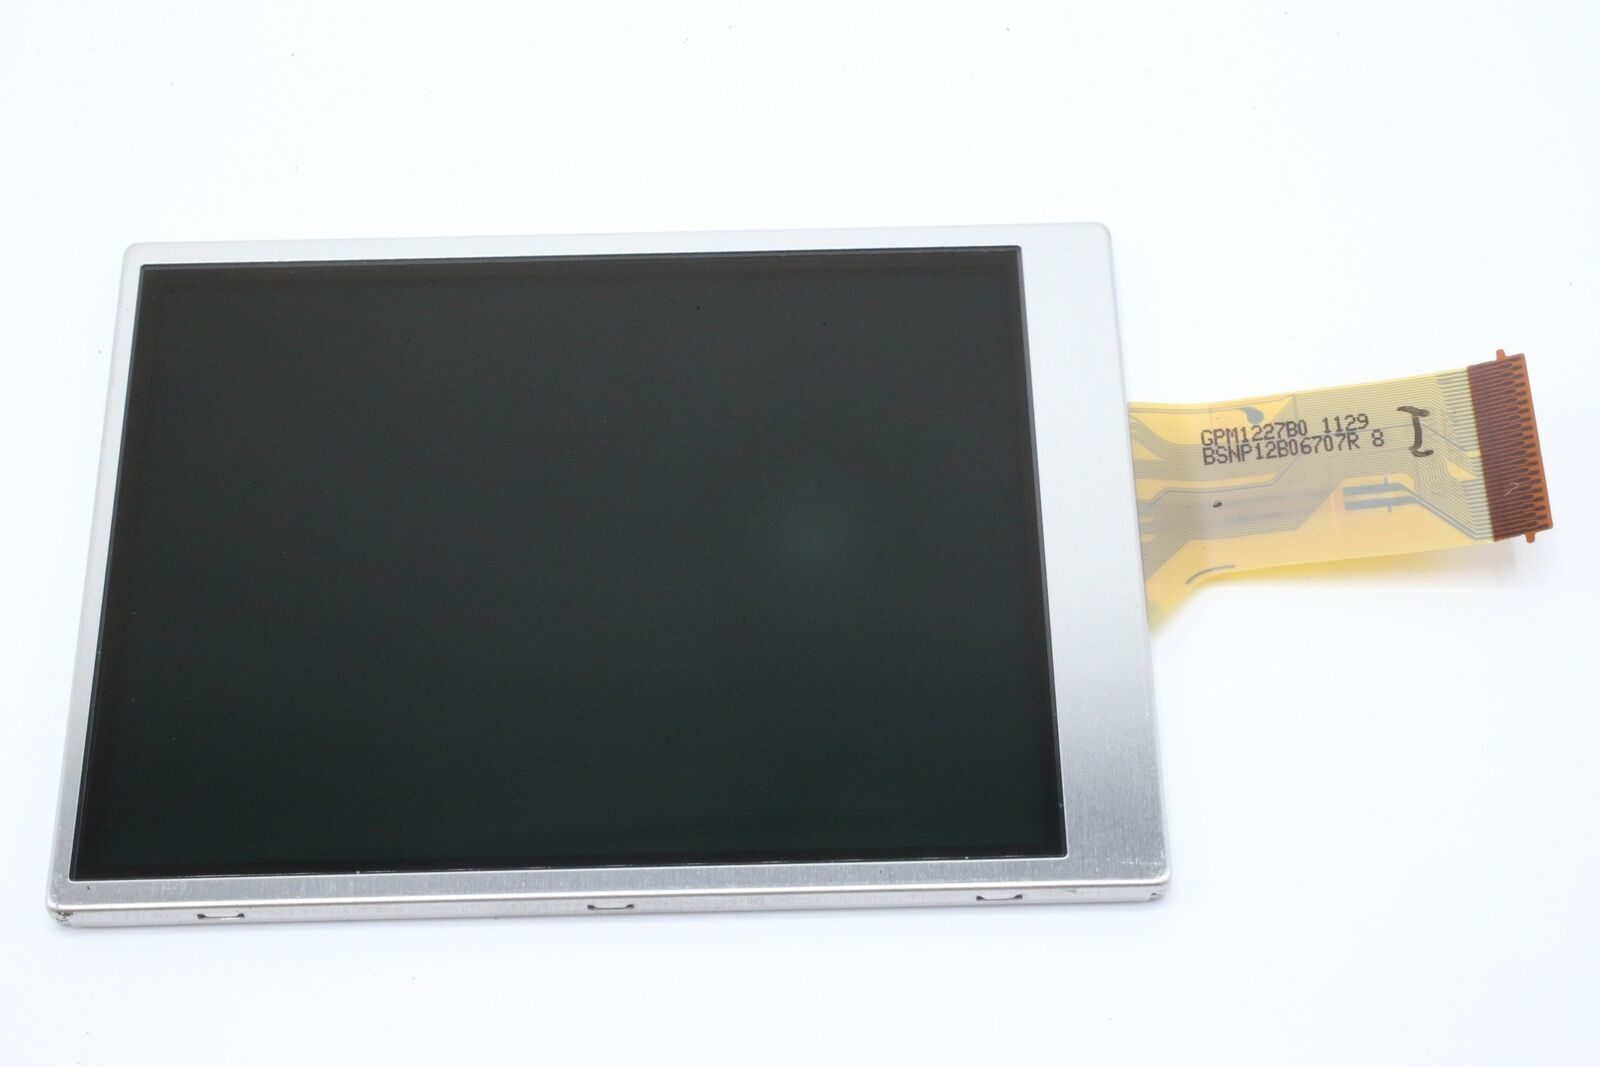 Nikon Coolpix S2700 S2800 S2900 LCD Screen Display Replacement Part - $15.99